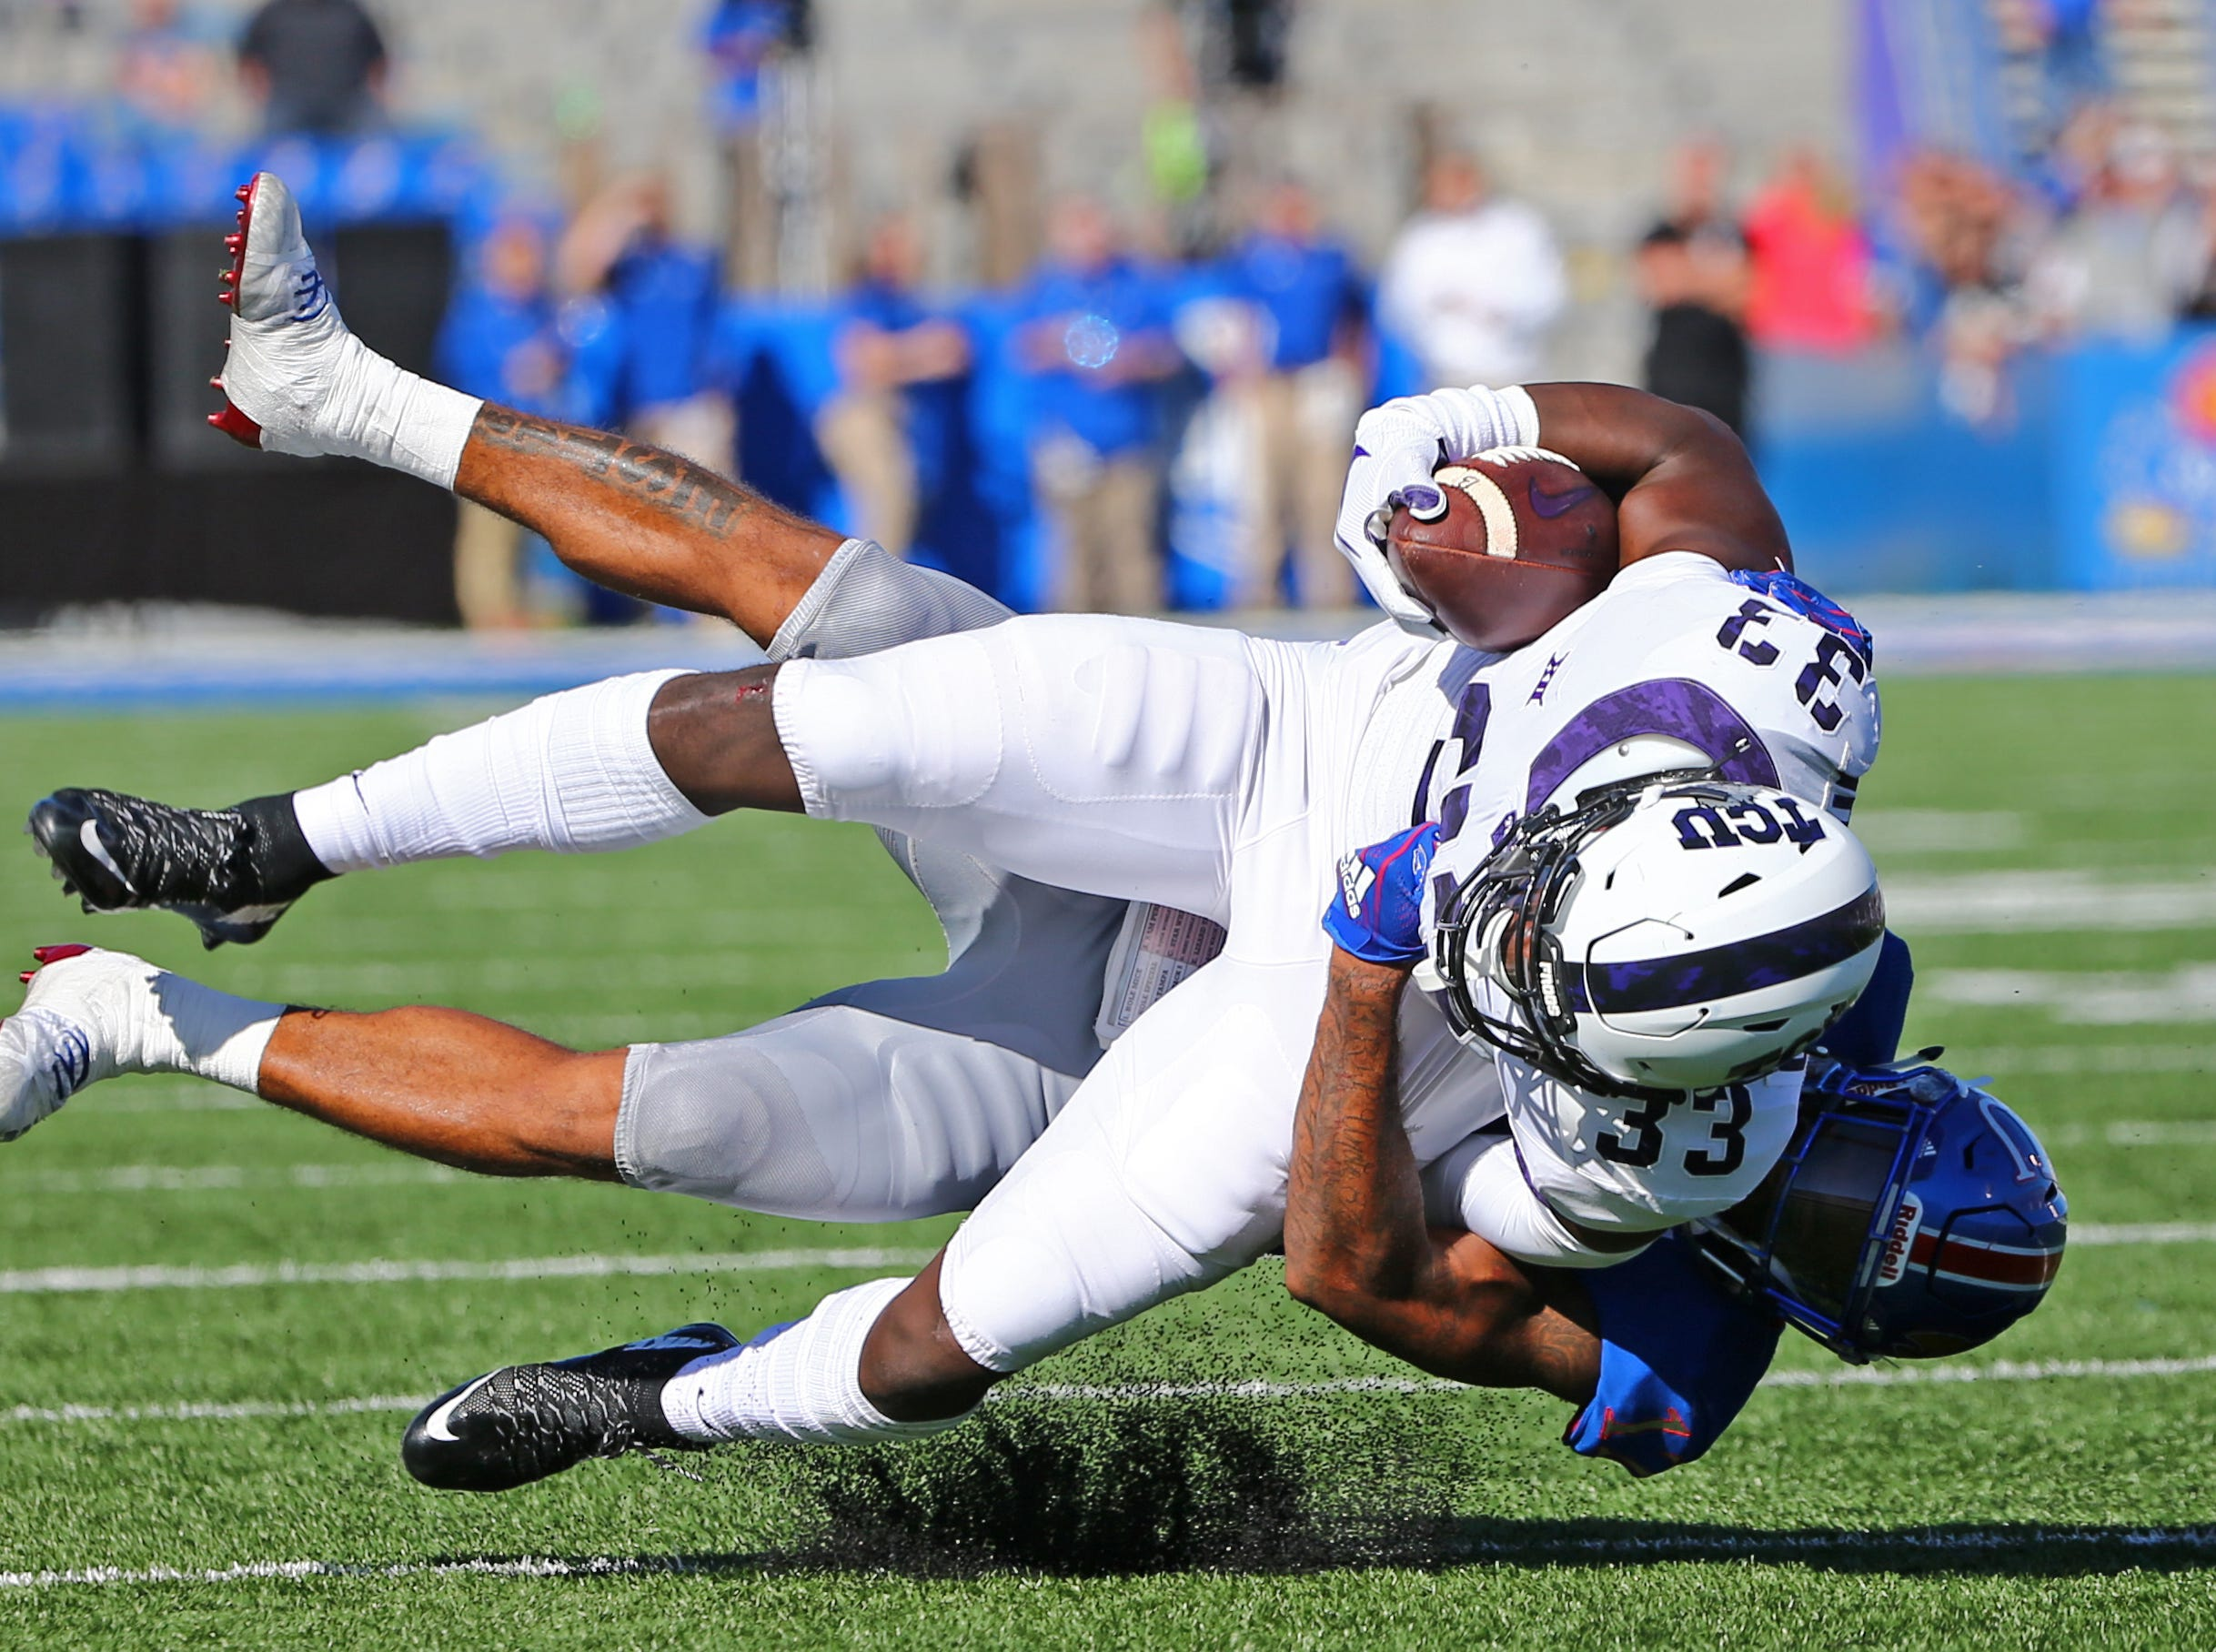 TCU Horned Frogs running back Sewo Olonilua (33) is tackled by Kansas Jayhawks safety Jeremiah McCullough (12) in the first half at Memorial Stadium.